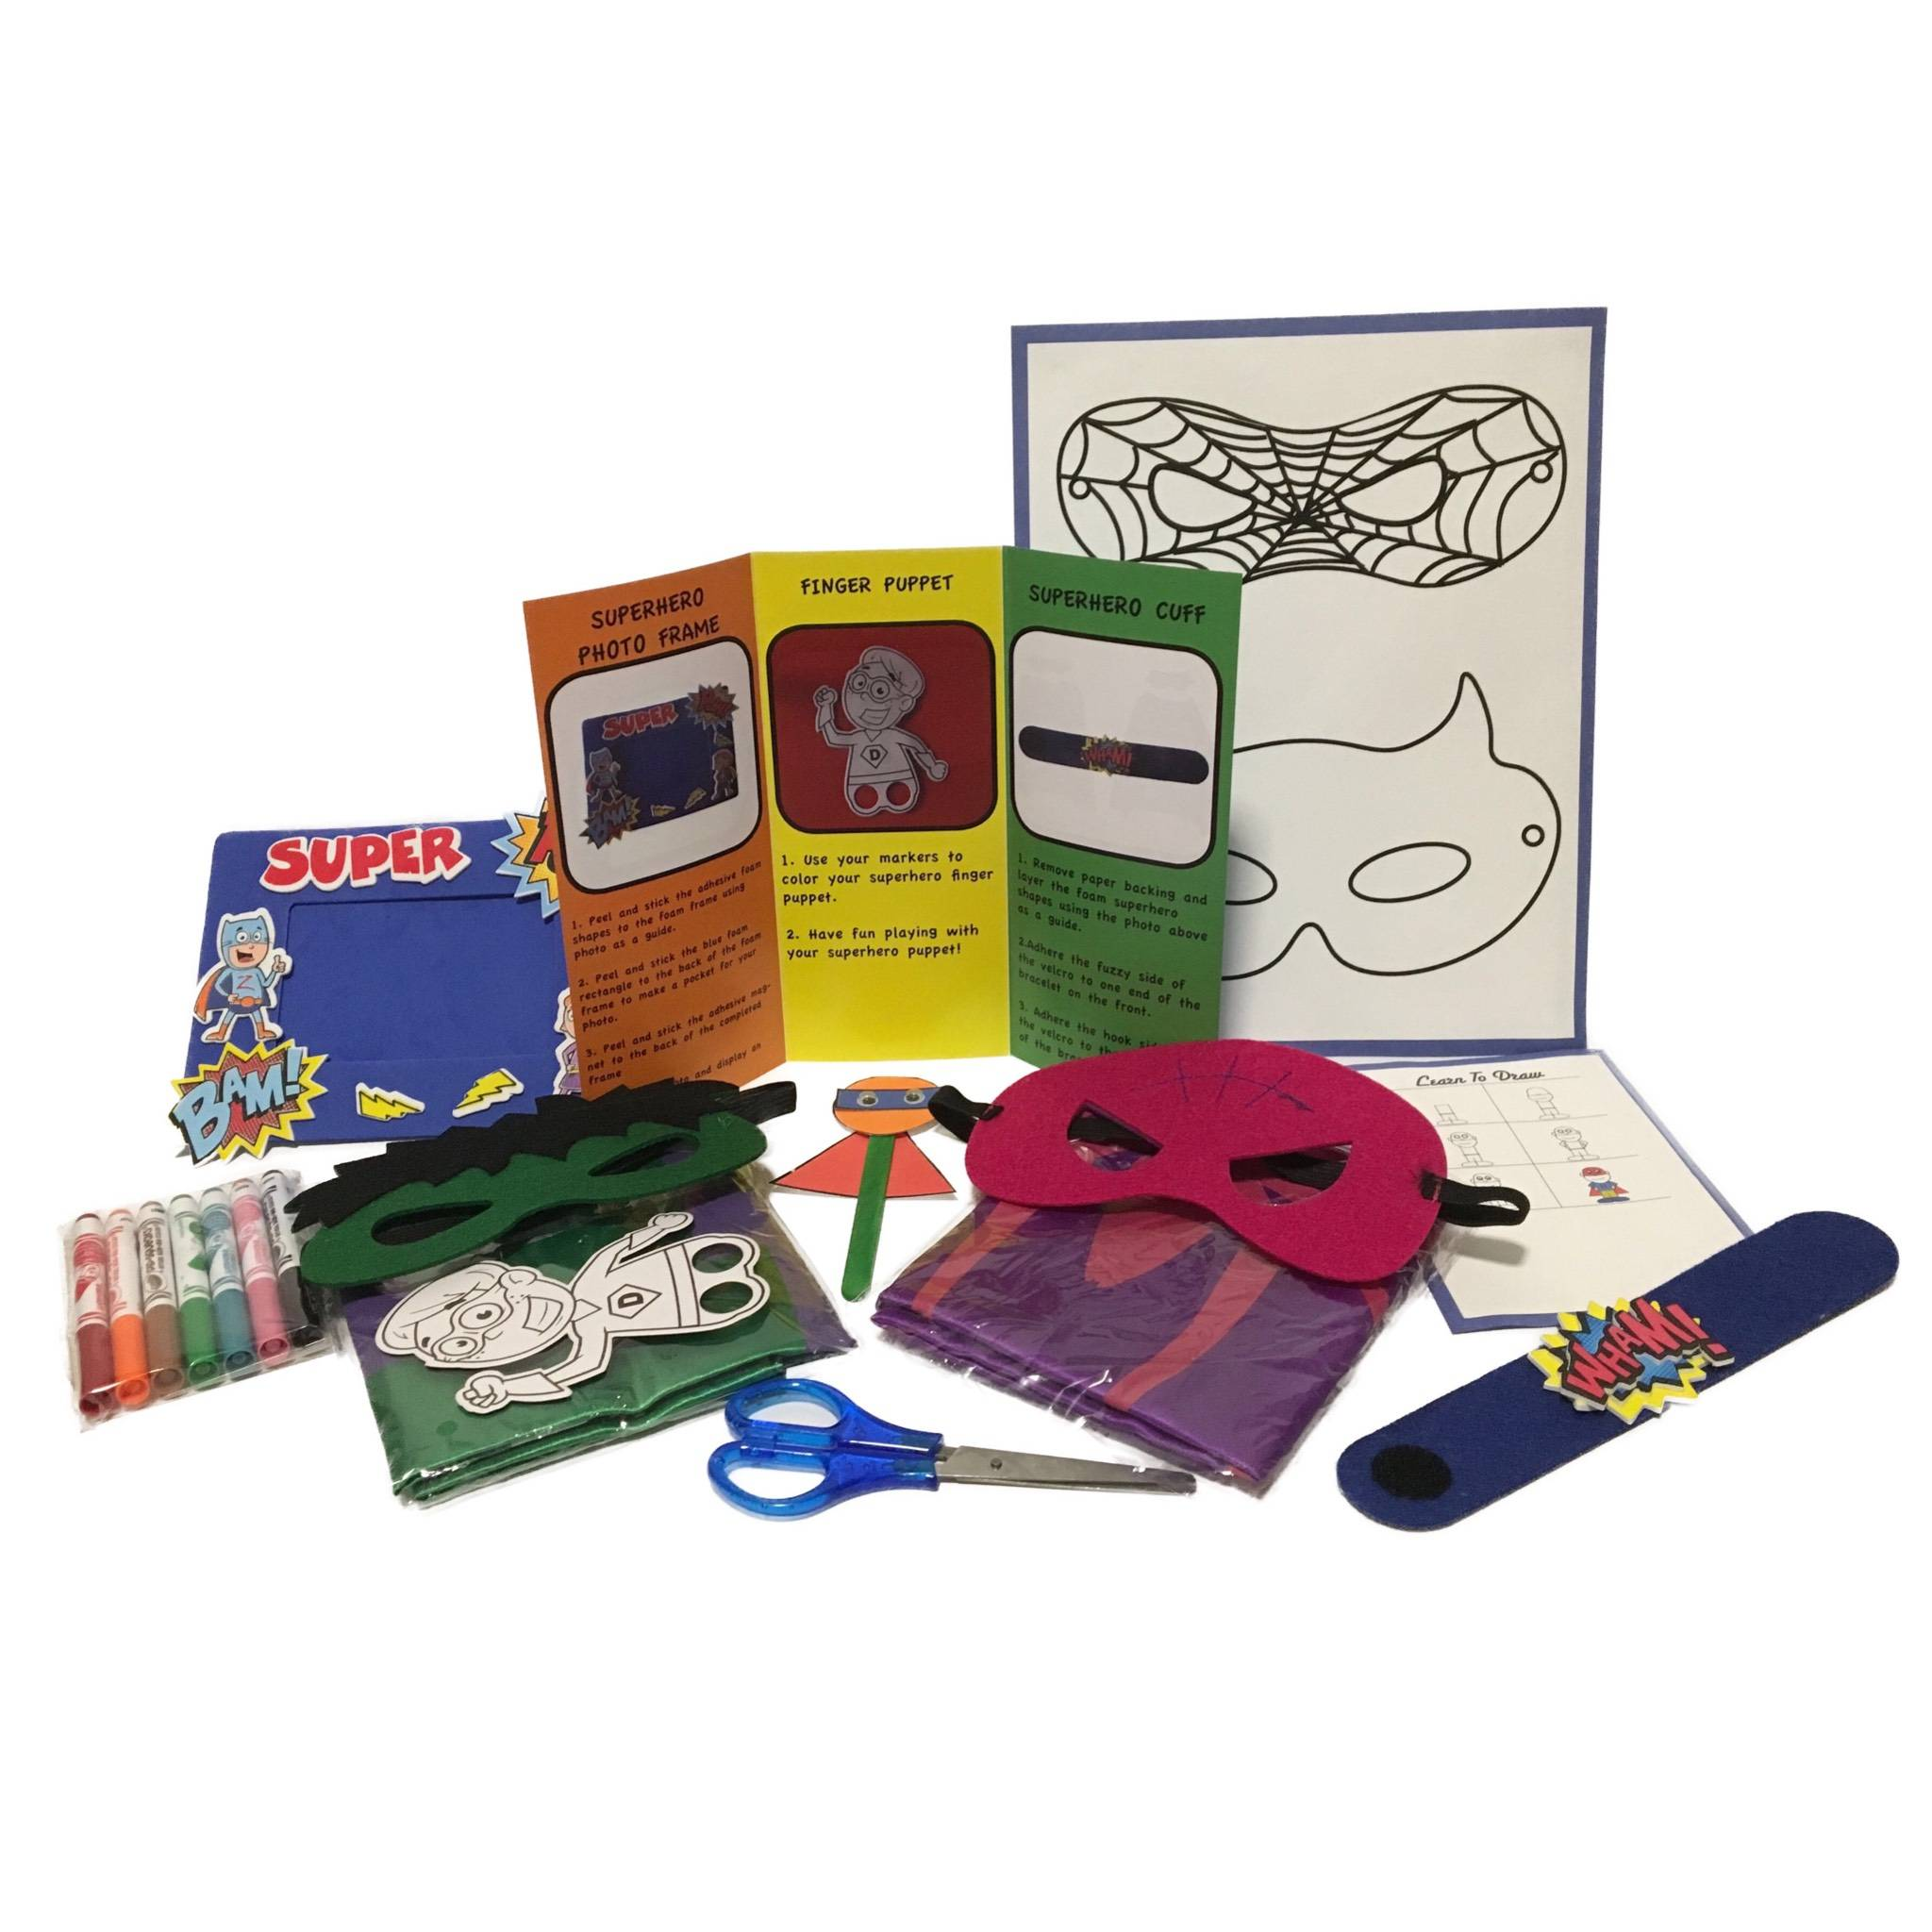 SUPERHERO Children's craft subscription Canada